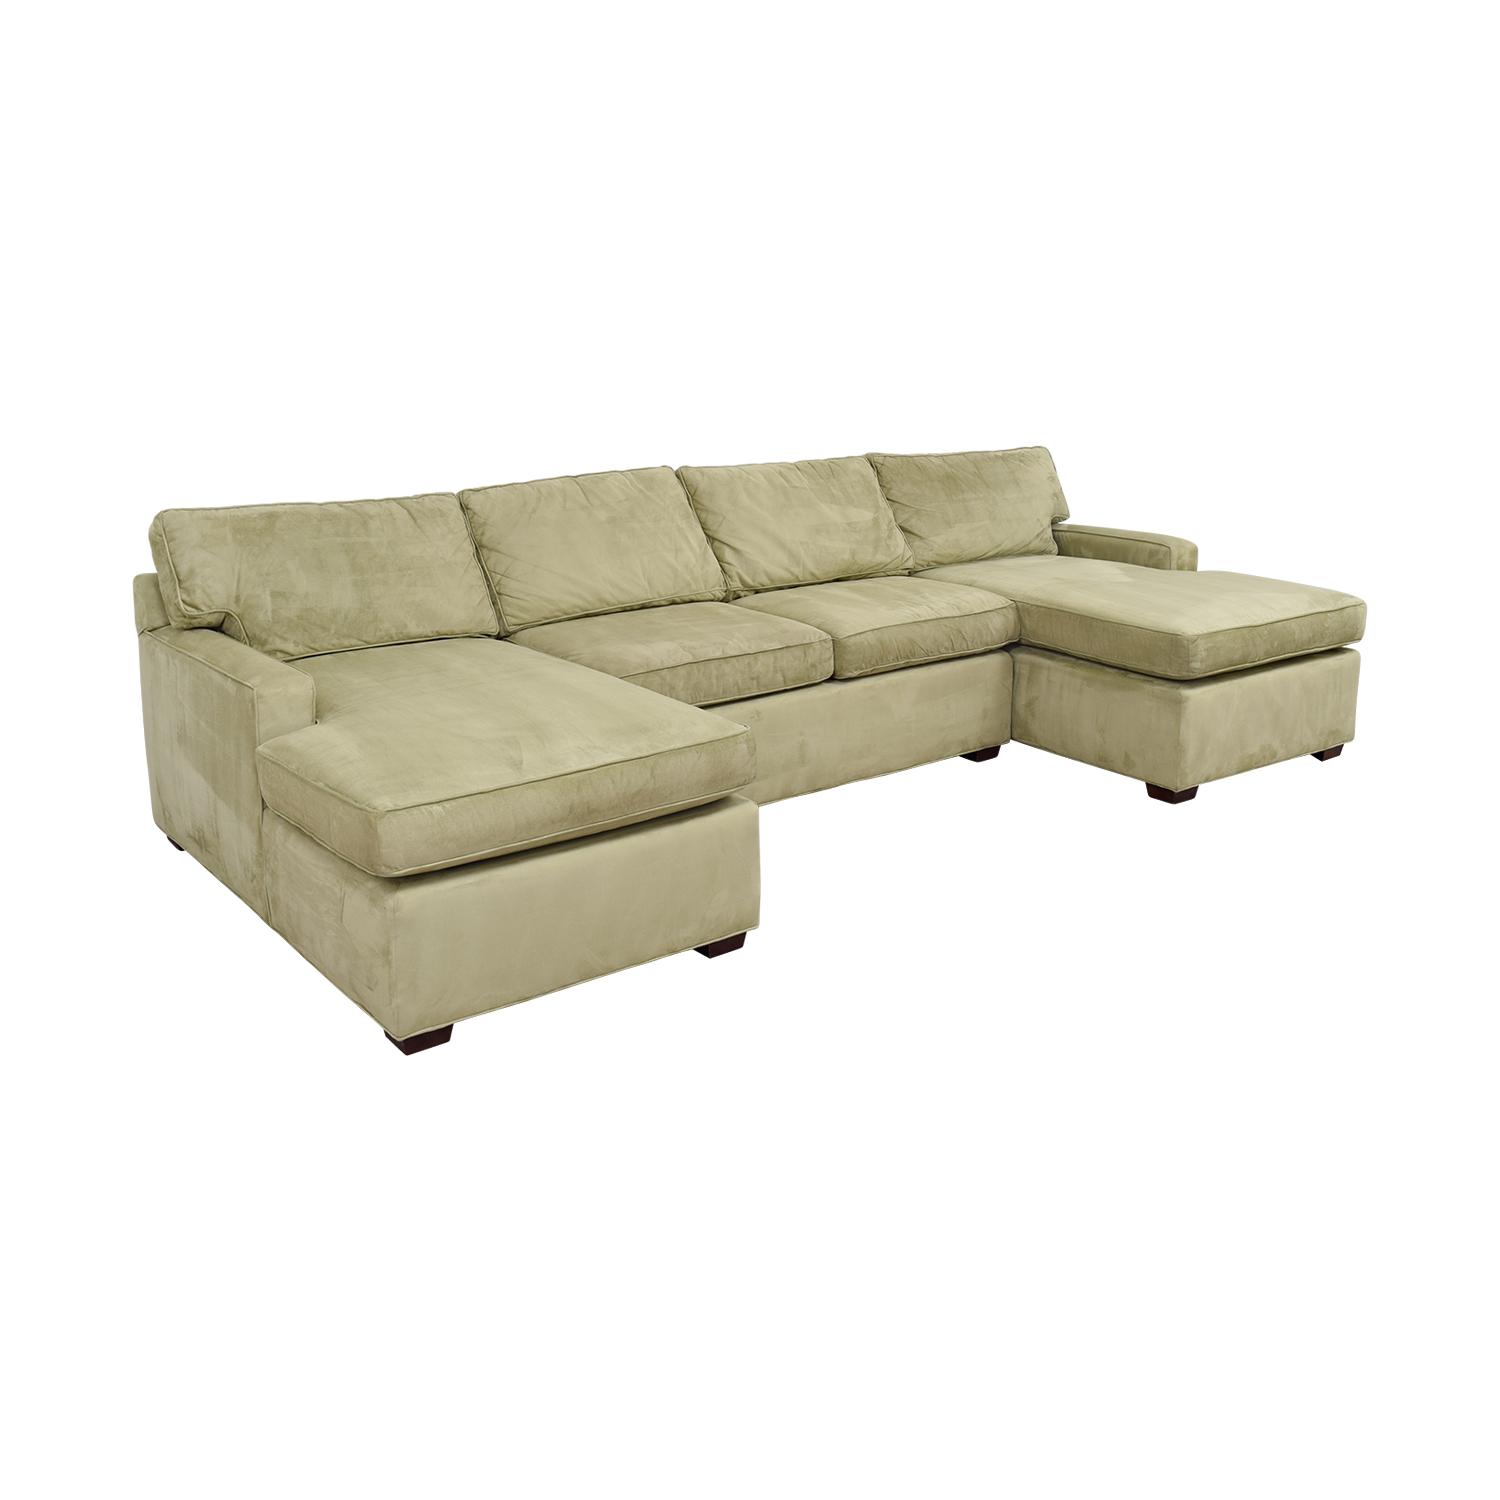 pottery barn chaise sofa sectional monroe 3 seater bed 86 off double light